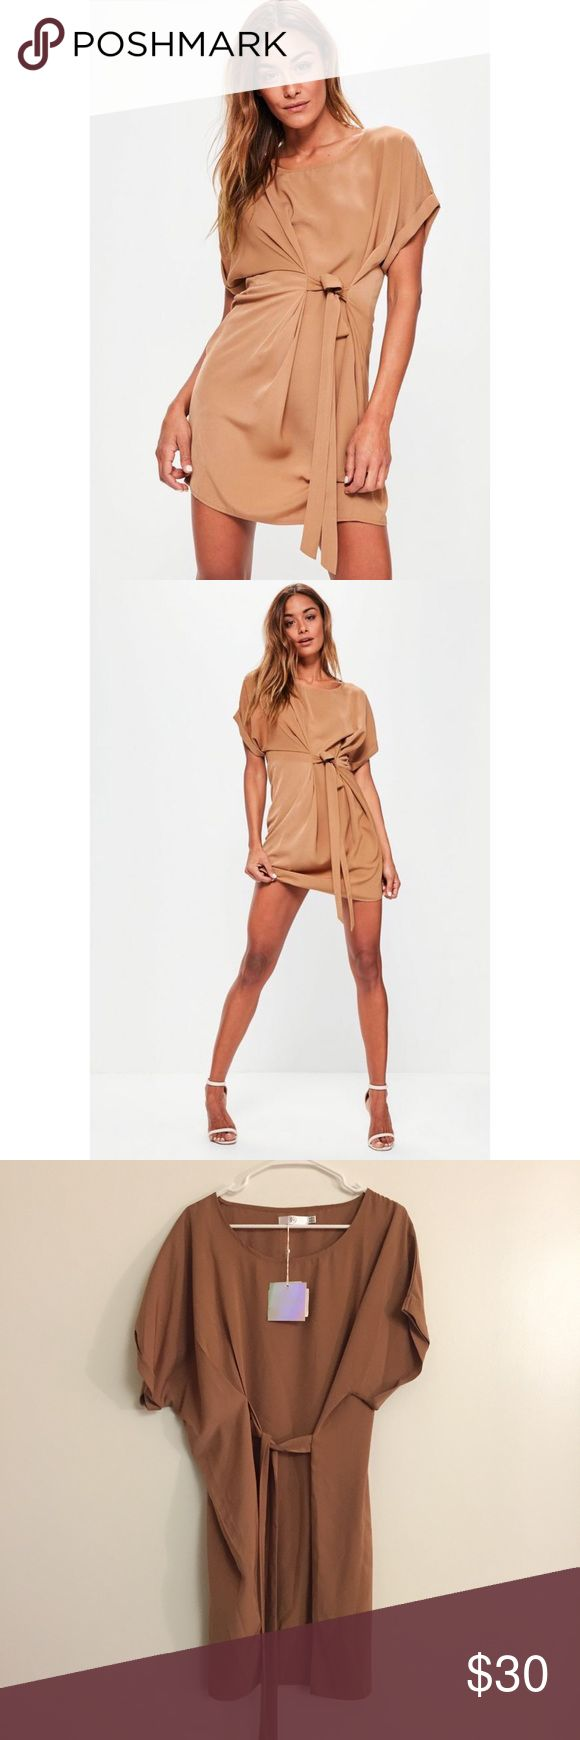 Missguided Tie Waist Folded Sleeve Shift Dress Original Price: $45 US size 12, UK size 16 Nude/camel color short sleeve tie waist folded sleeves dress Missguided Dresses Mini